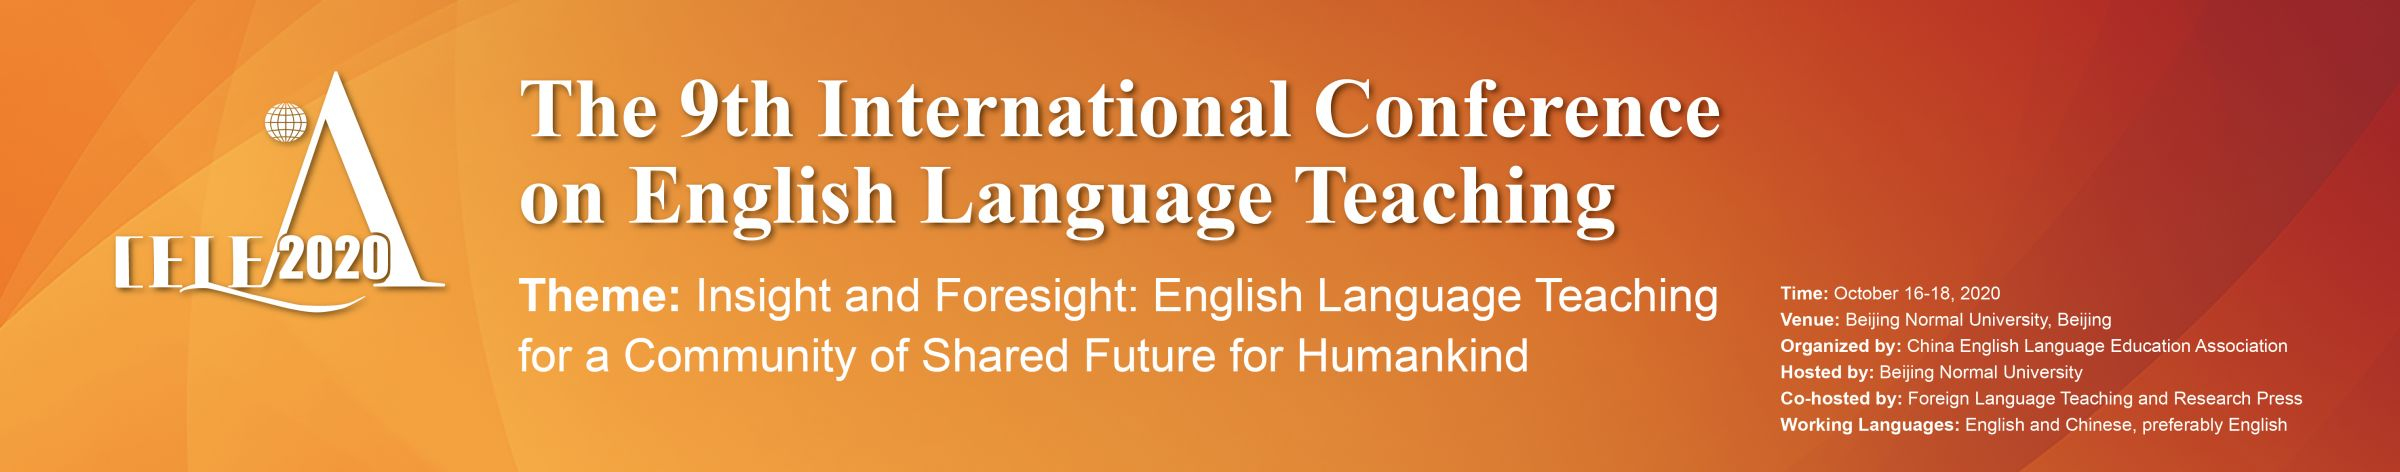 The 9th International Conference on English Language Teaching (ELT) In China